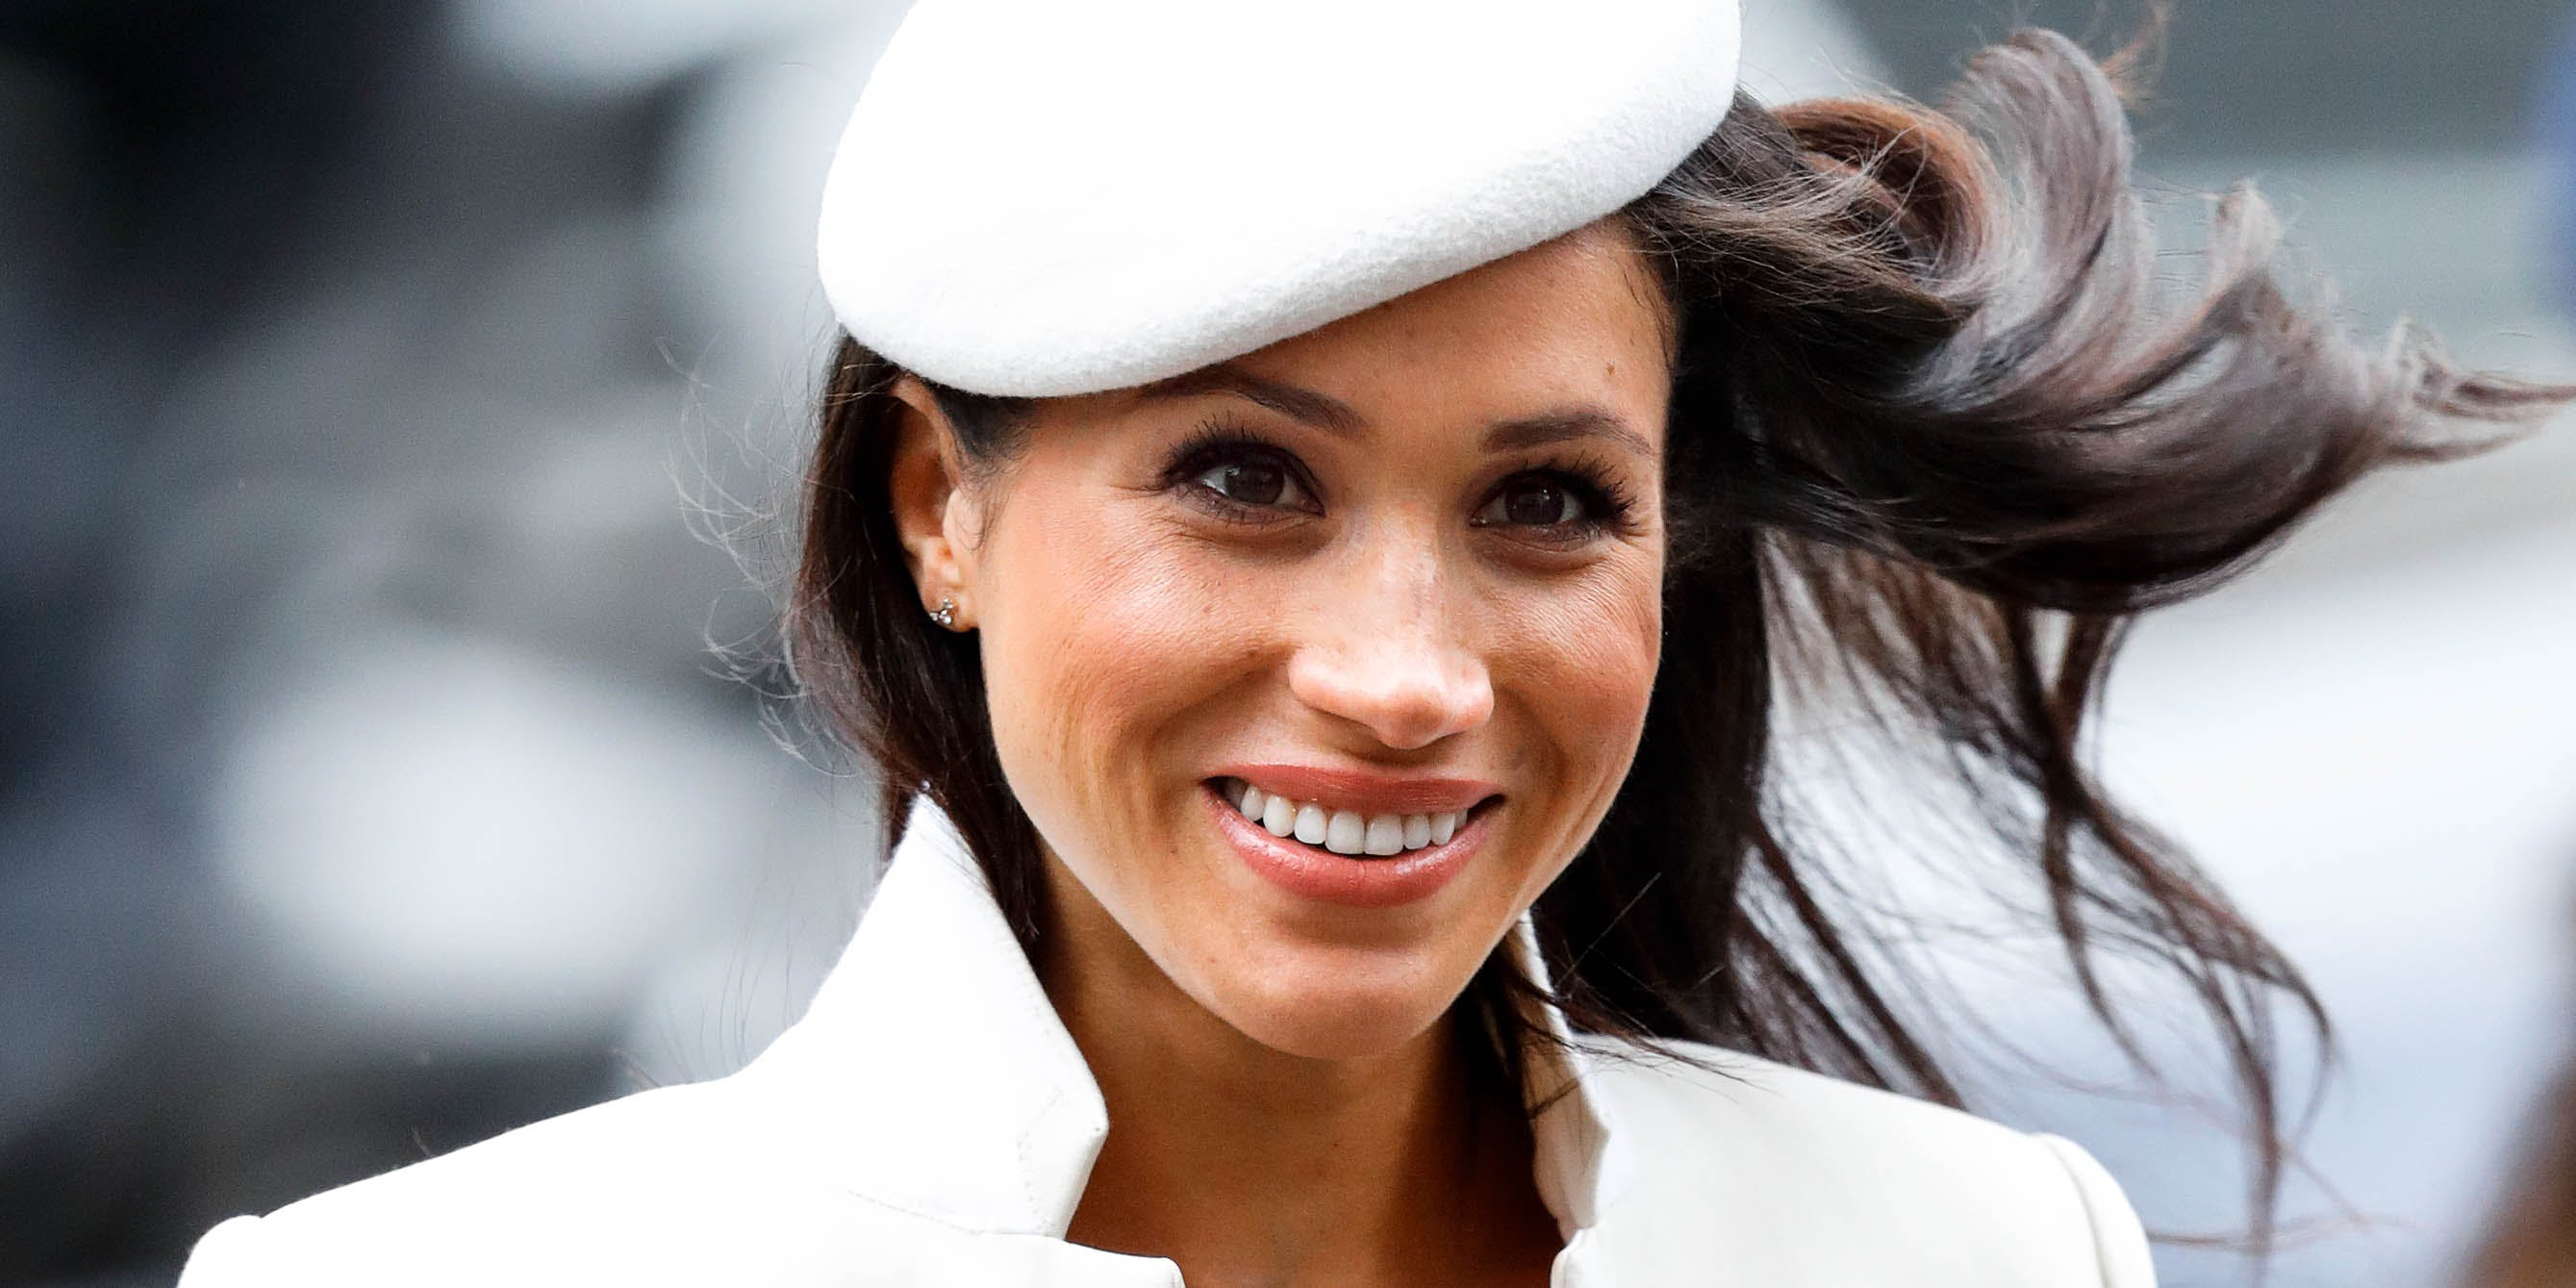 Meghan Markle's dad claims she handed out weed at her first wedding.